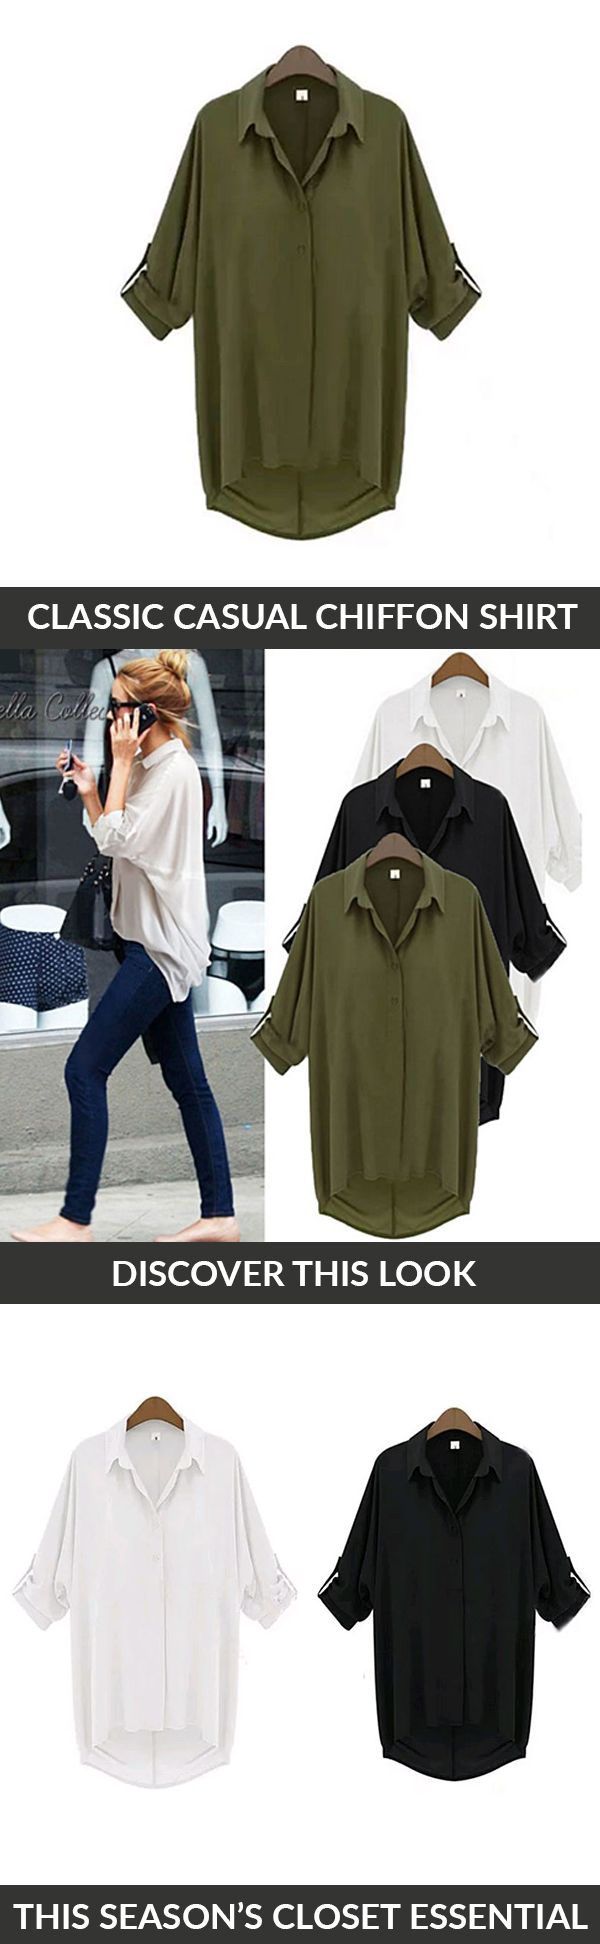 Stay warm but look cool as the weather gets colder with the Chill with Me Chiffon Shirt. The shirt's relaxed silhouette makes it perfect for lounging around, working in the office, or chilling out with friends. Pair with skinny jeans and cute flats for a versatile day-to-night look.